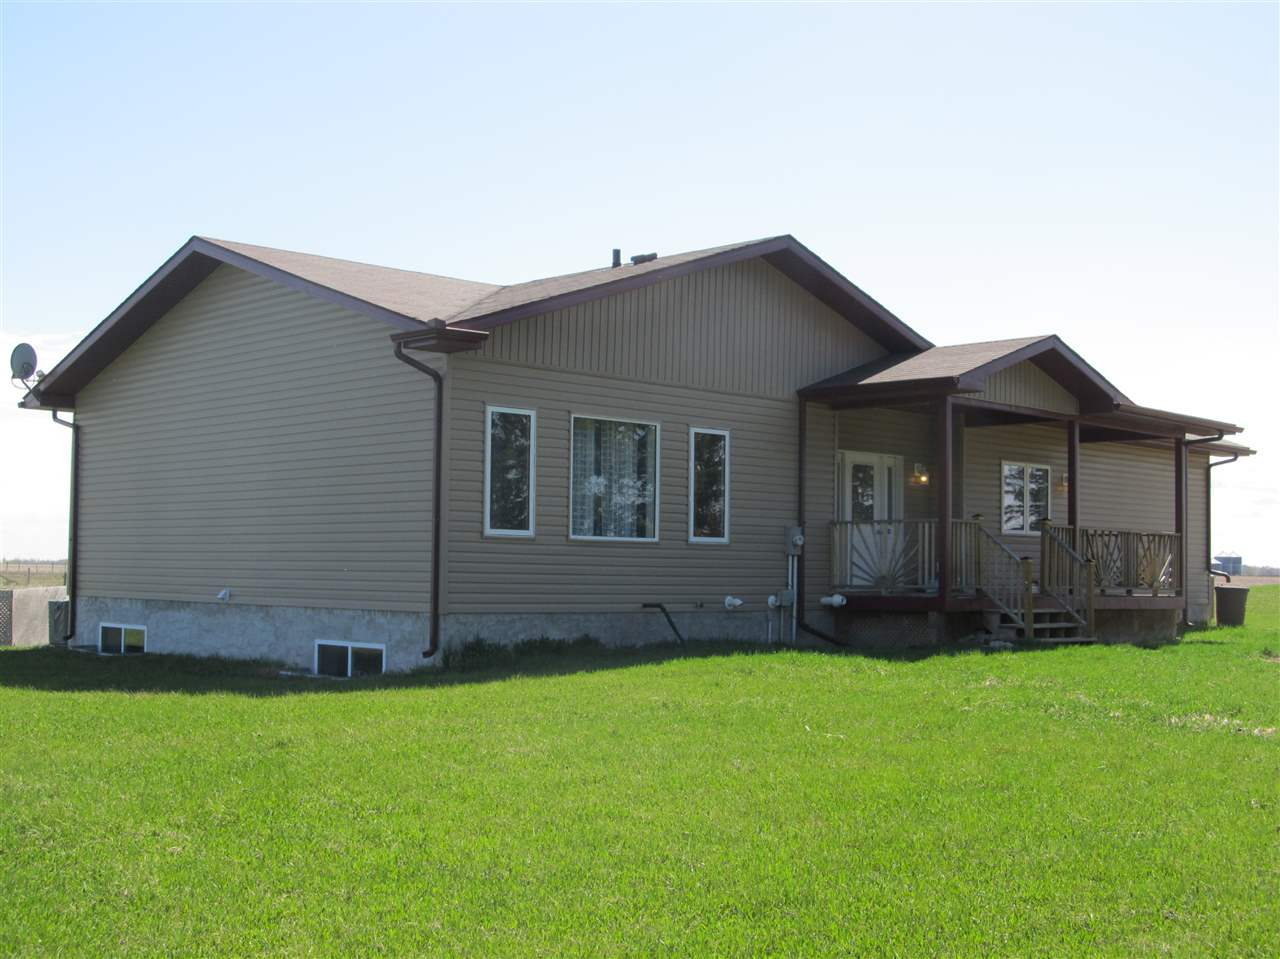 Photo 2: 58303 RR 263: Rural Westlock County House for sale : MLS® # E4072279